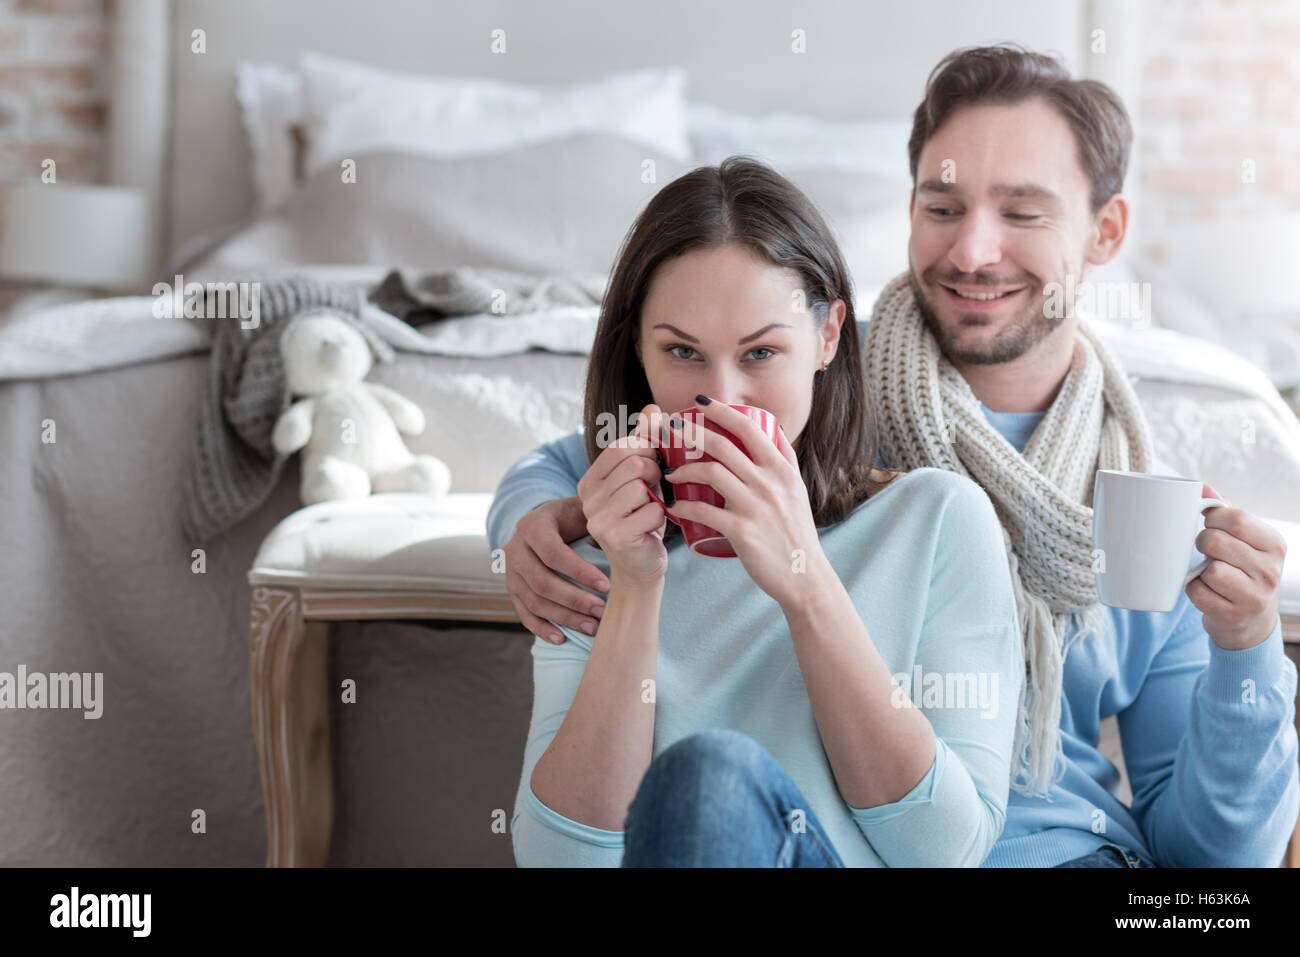 Good looking nice woman taking a sip of tea - Stock Image